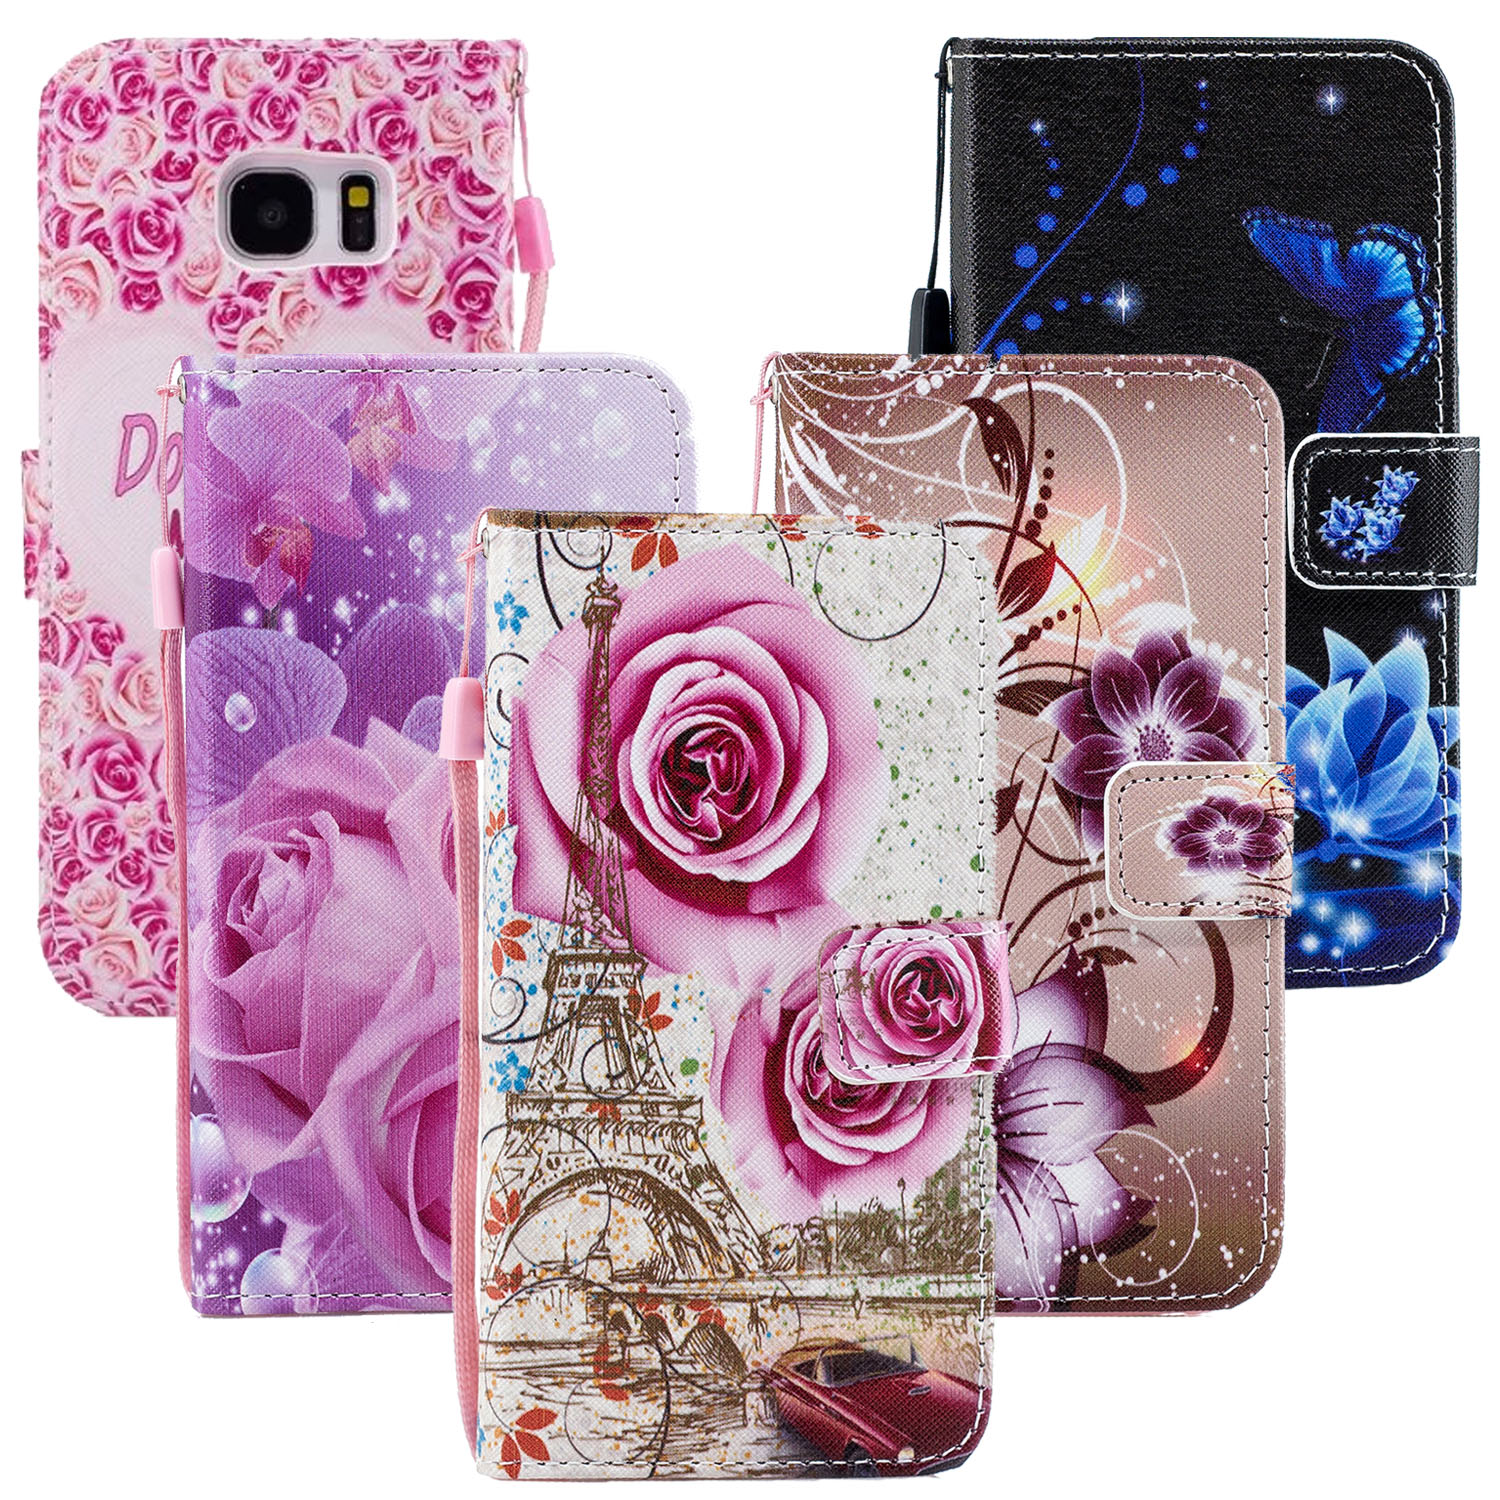 Flower Leather Cases For Samsung Galaxy S9 S8 Plus Note 8 Case S3 S5 Neo A3 A5 A7 A8 Plus J1 J3 J2 J5 J7 Prime Cover Wallet Bag